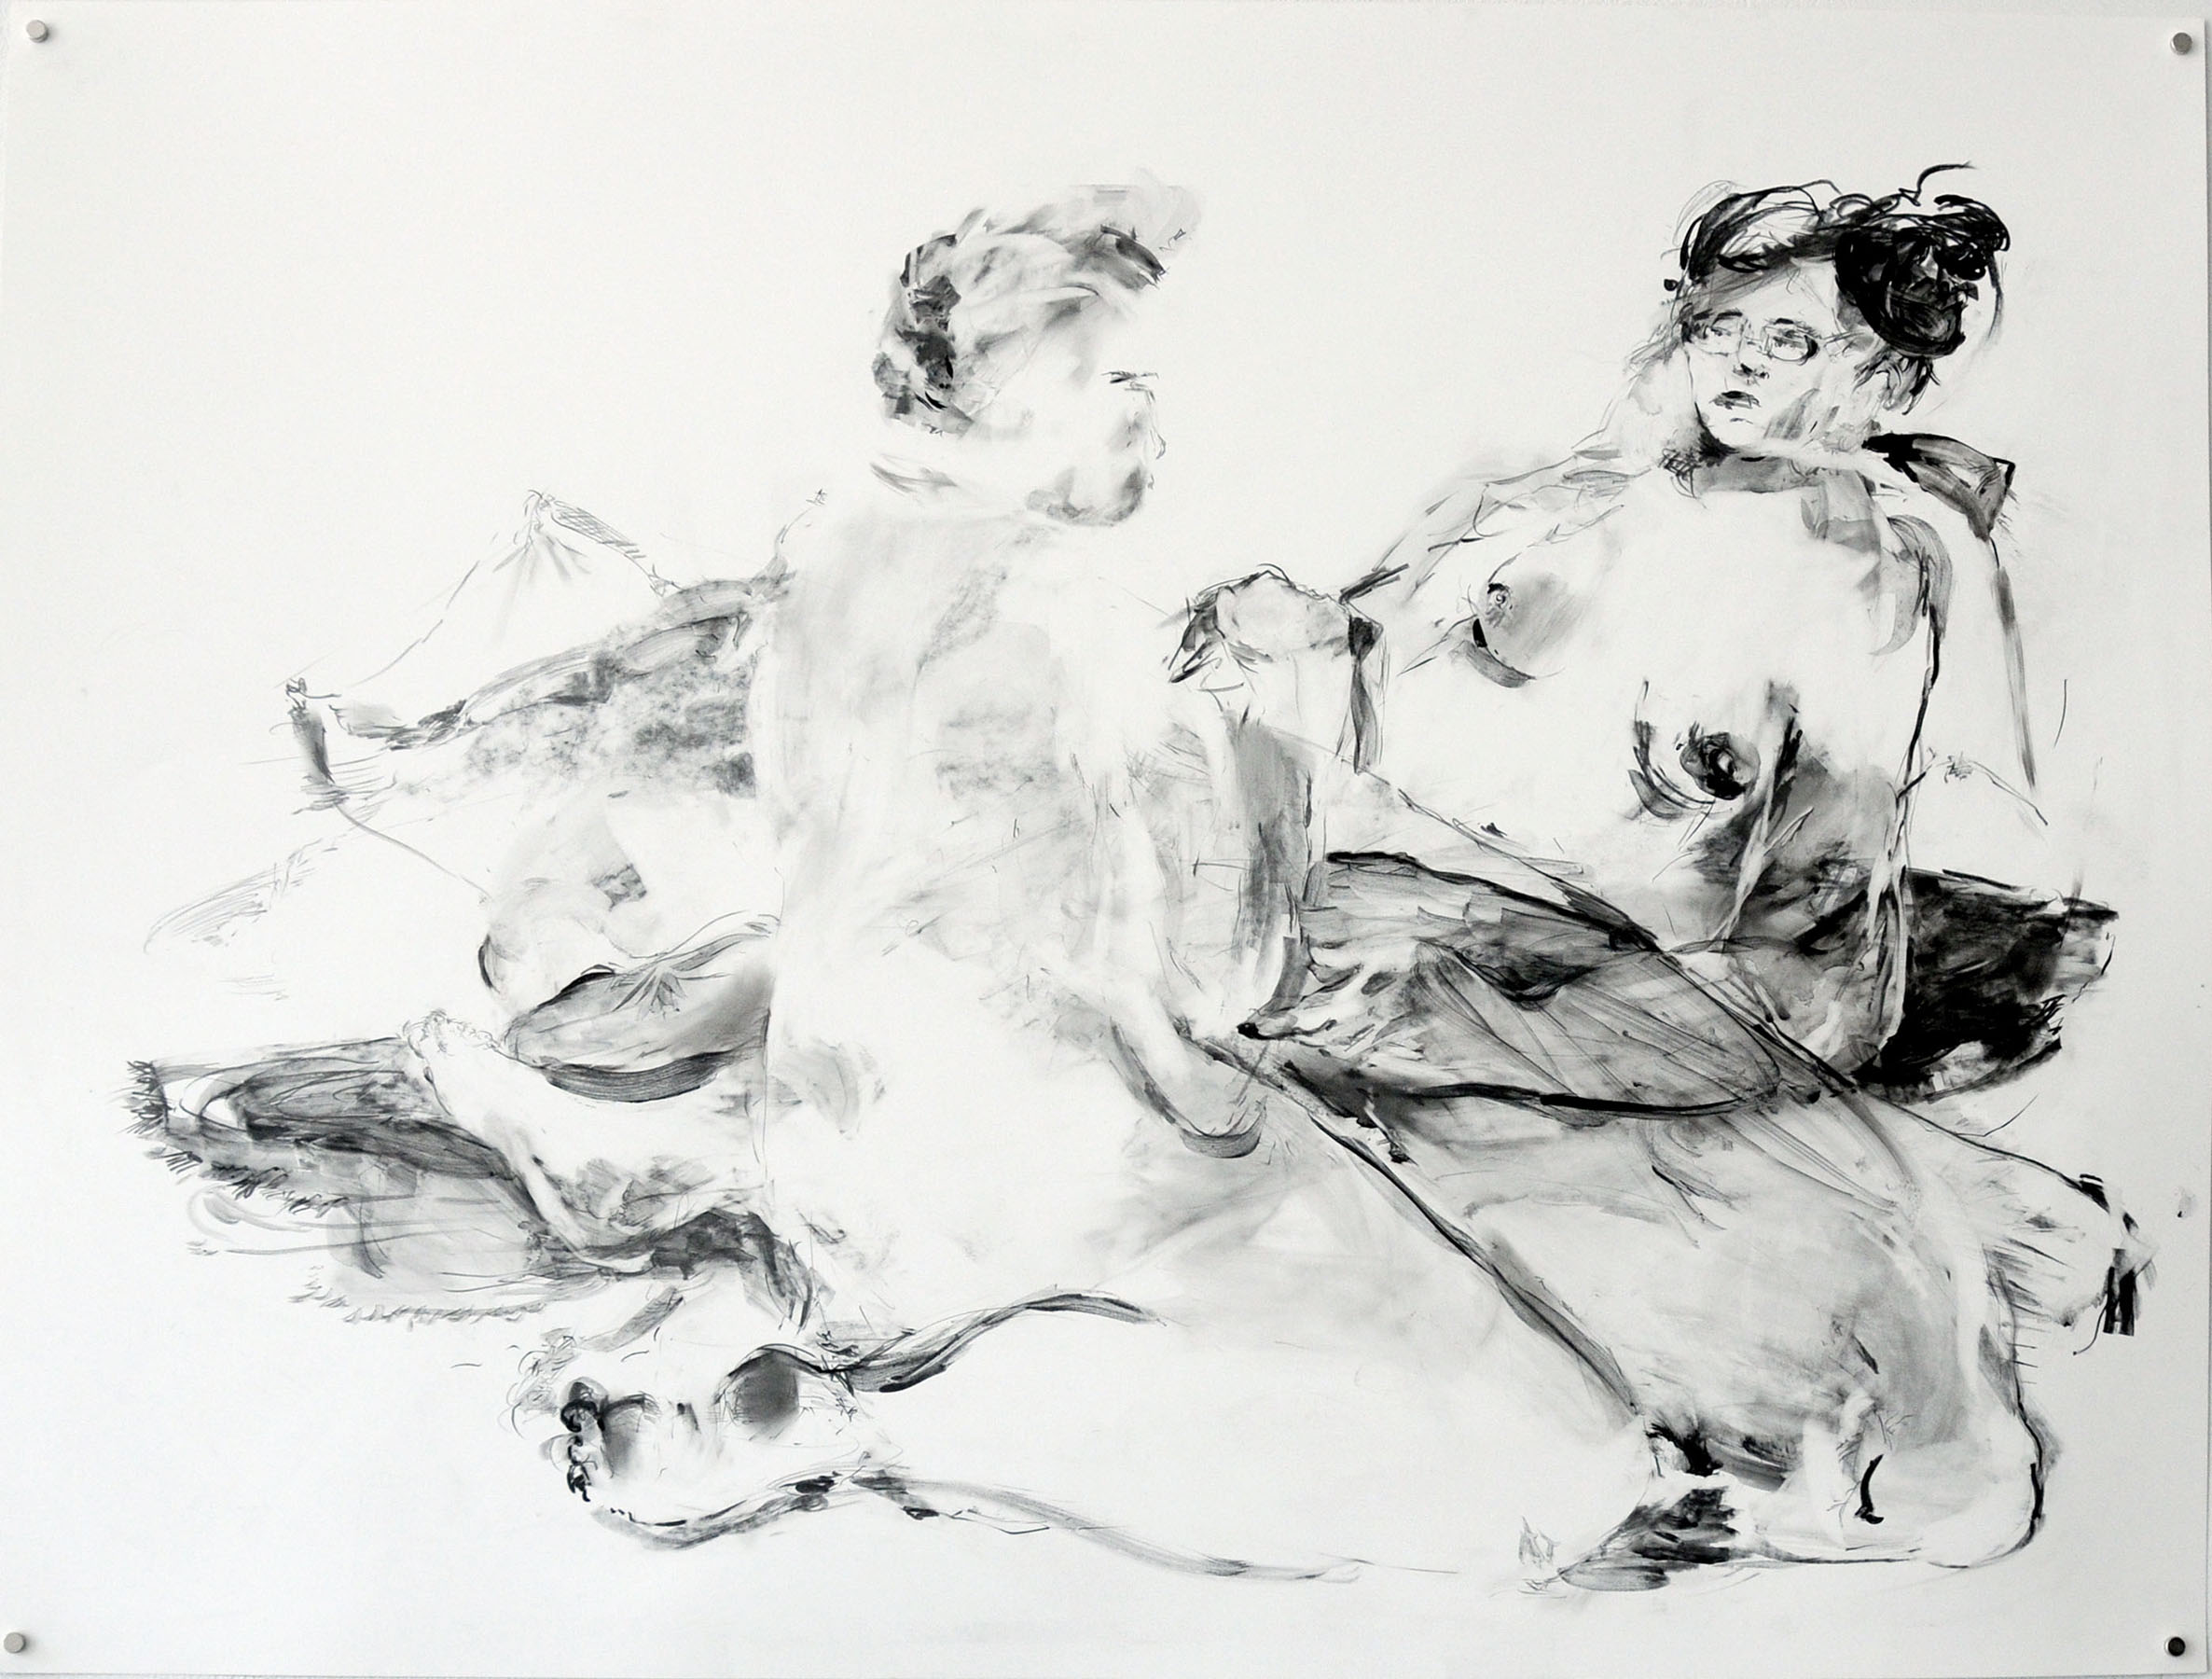 Sarah Creagen, Down in the Cave, 20 x 26 inches, graphite on yupo paper, 2015.jpeg